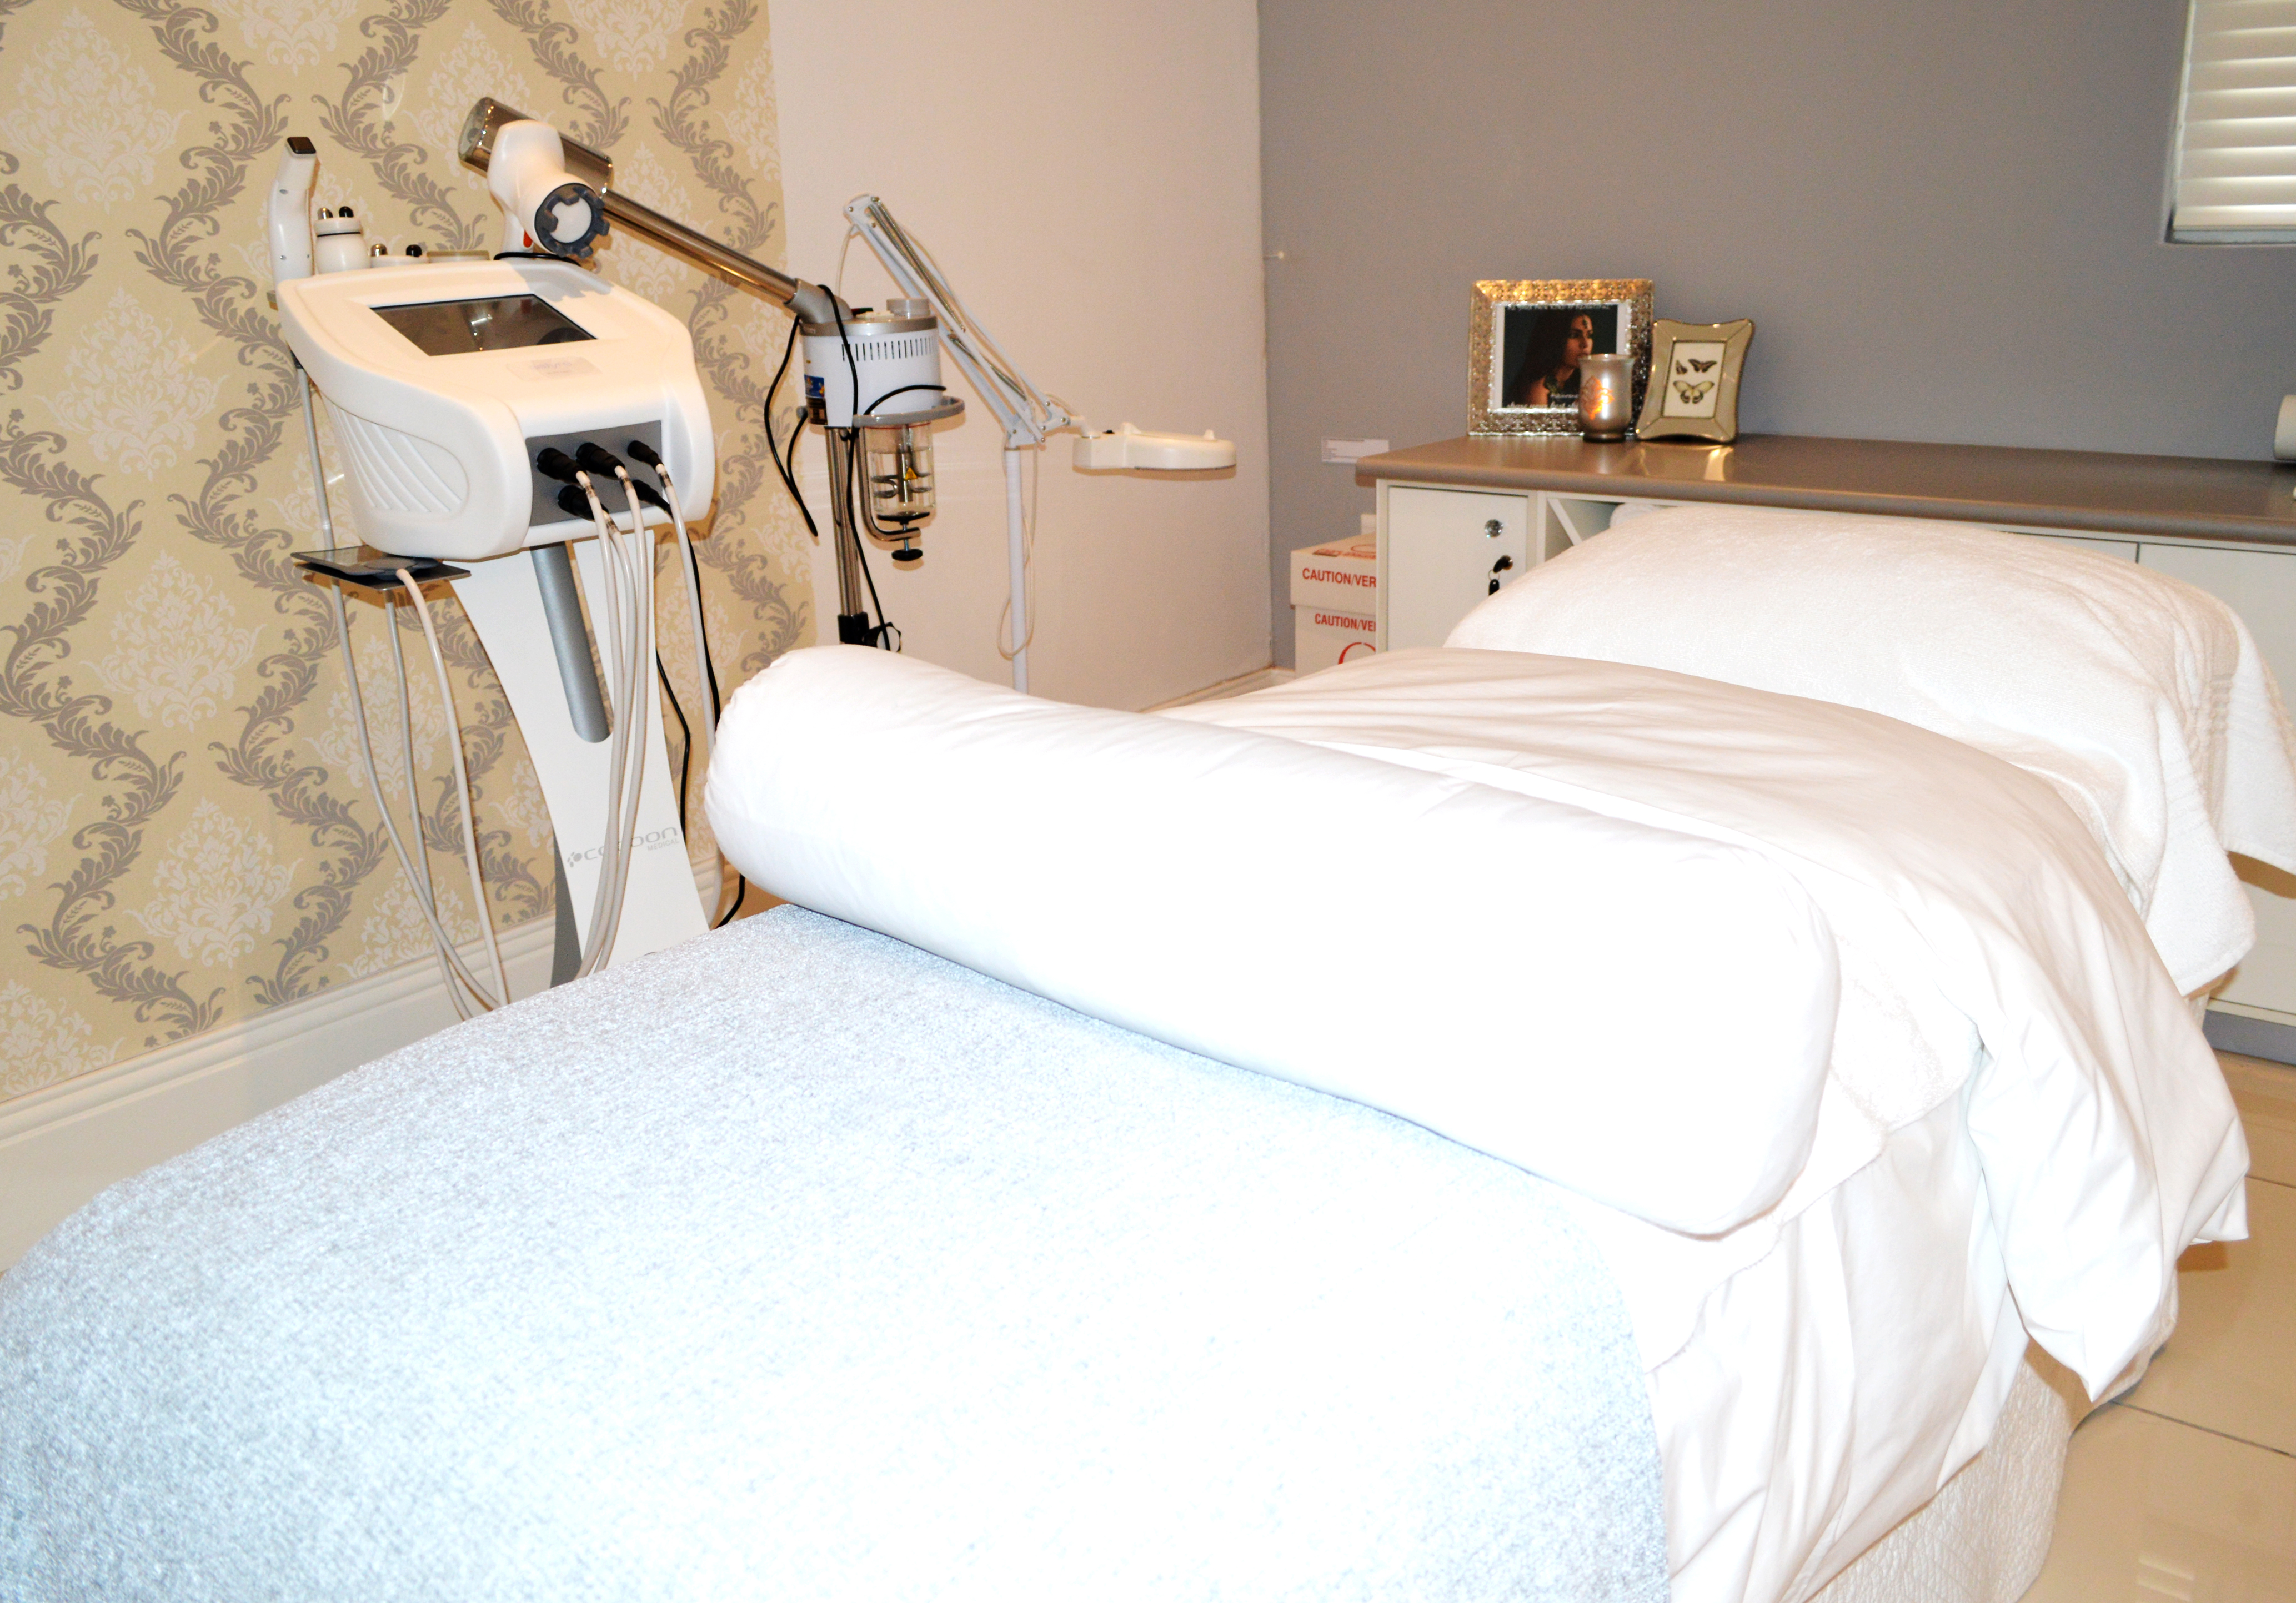 A bolster for under my knees and fresh, plush cotton sheets - perfect setting for a fabulous facial. Picture: Meneesha Govender